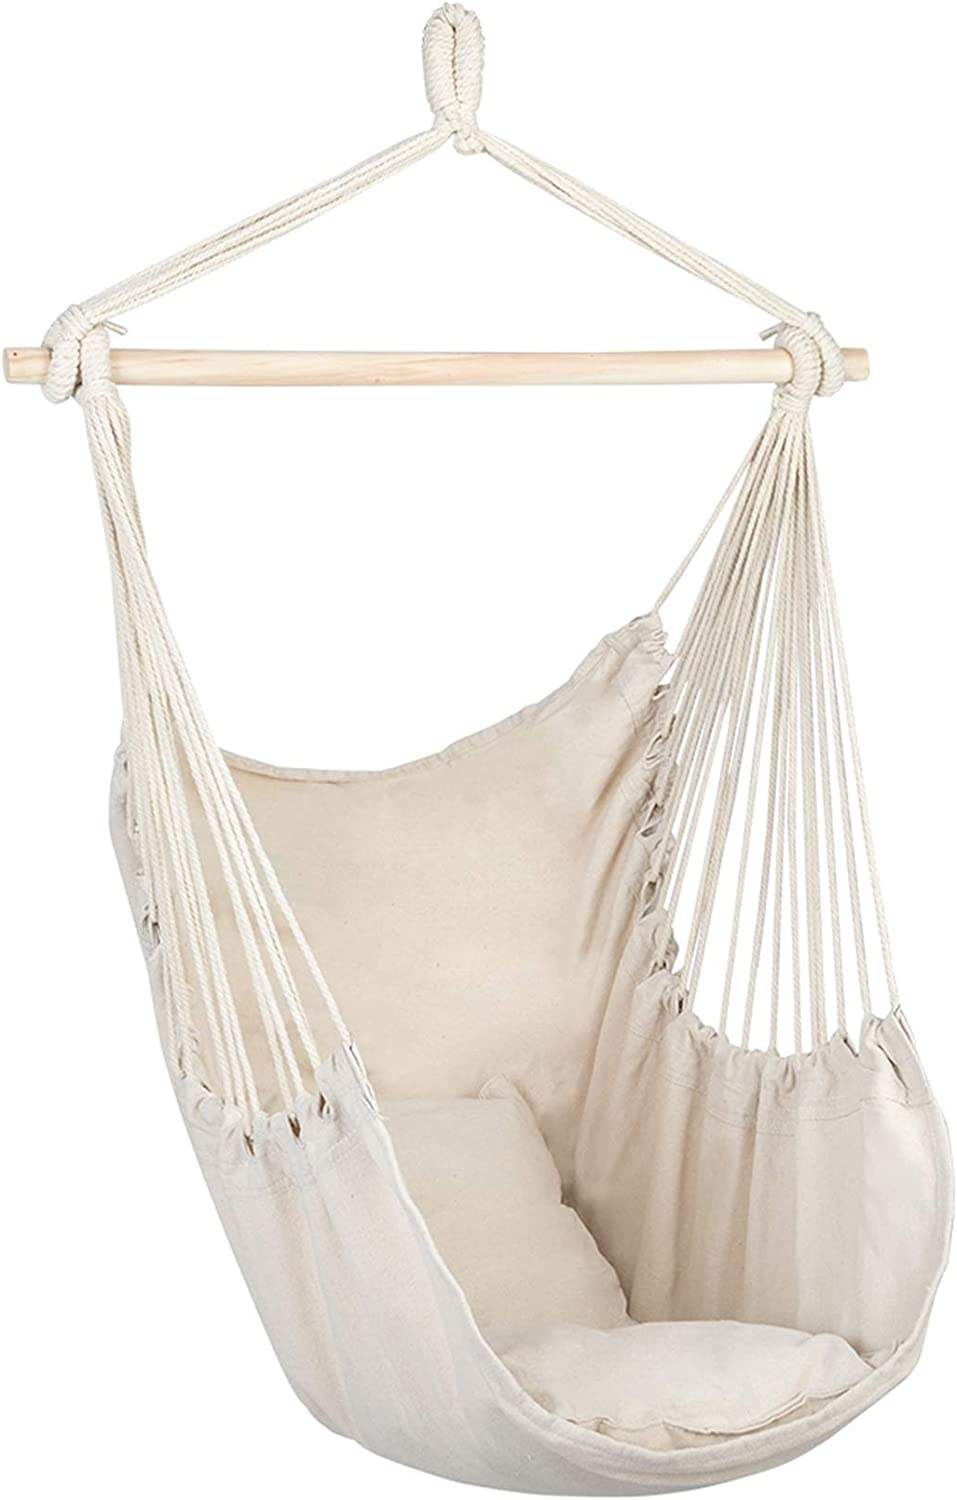 IHADA Distinctive National uniform free shipping Rare Cotton Canvas Hanging Chair with Rope Pillows